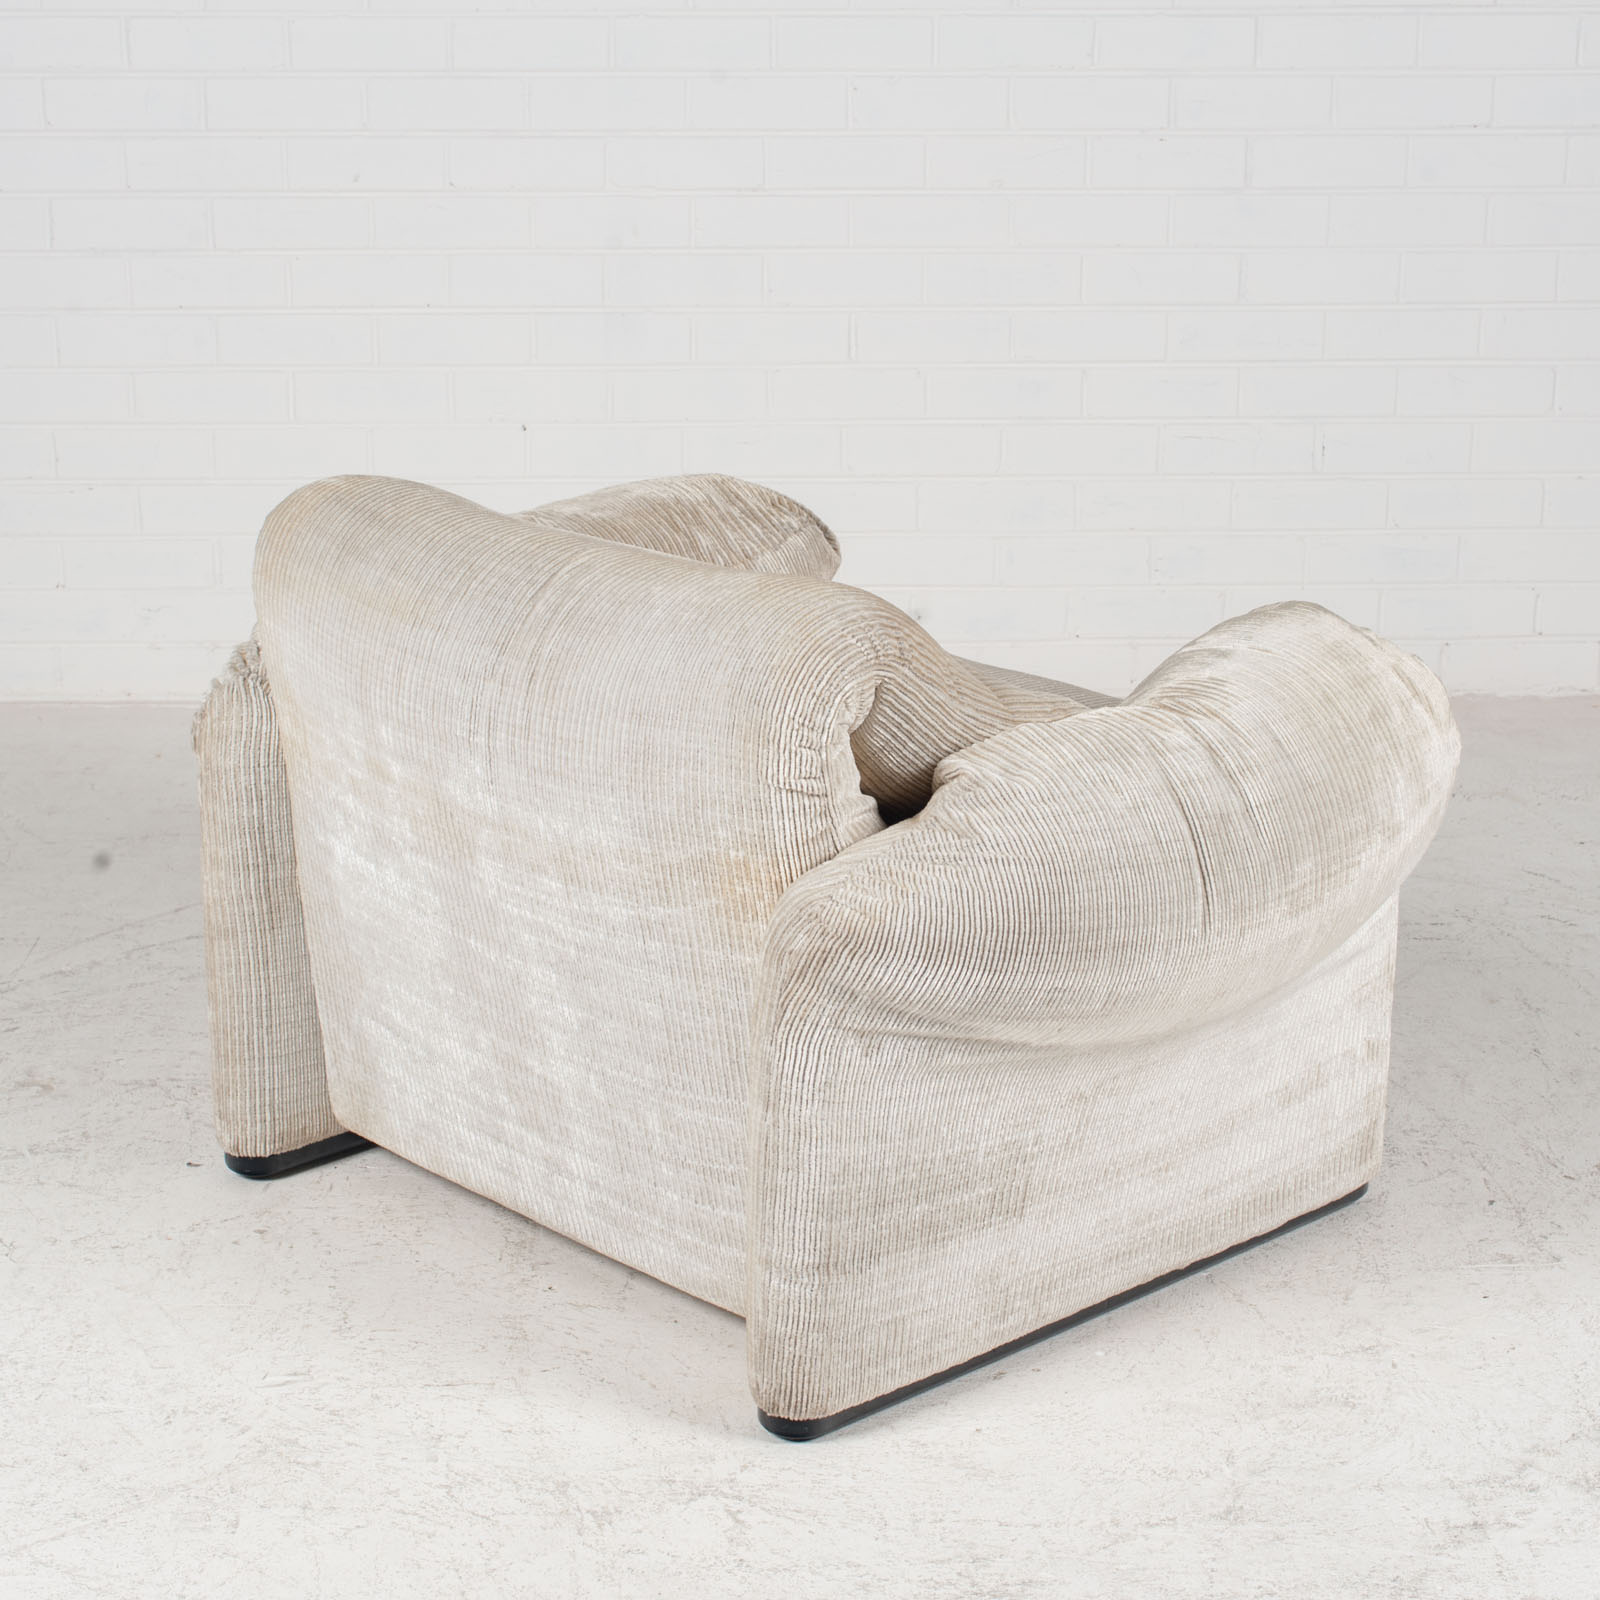 Maralunga Armchair By Vico Magistretti For Cassina In Original Upholstery 1970s Italy 09